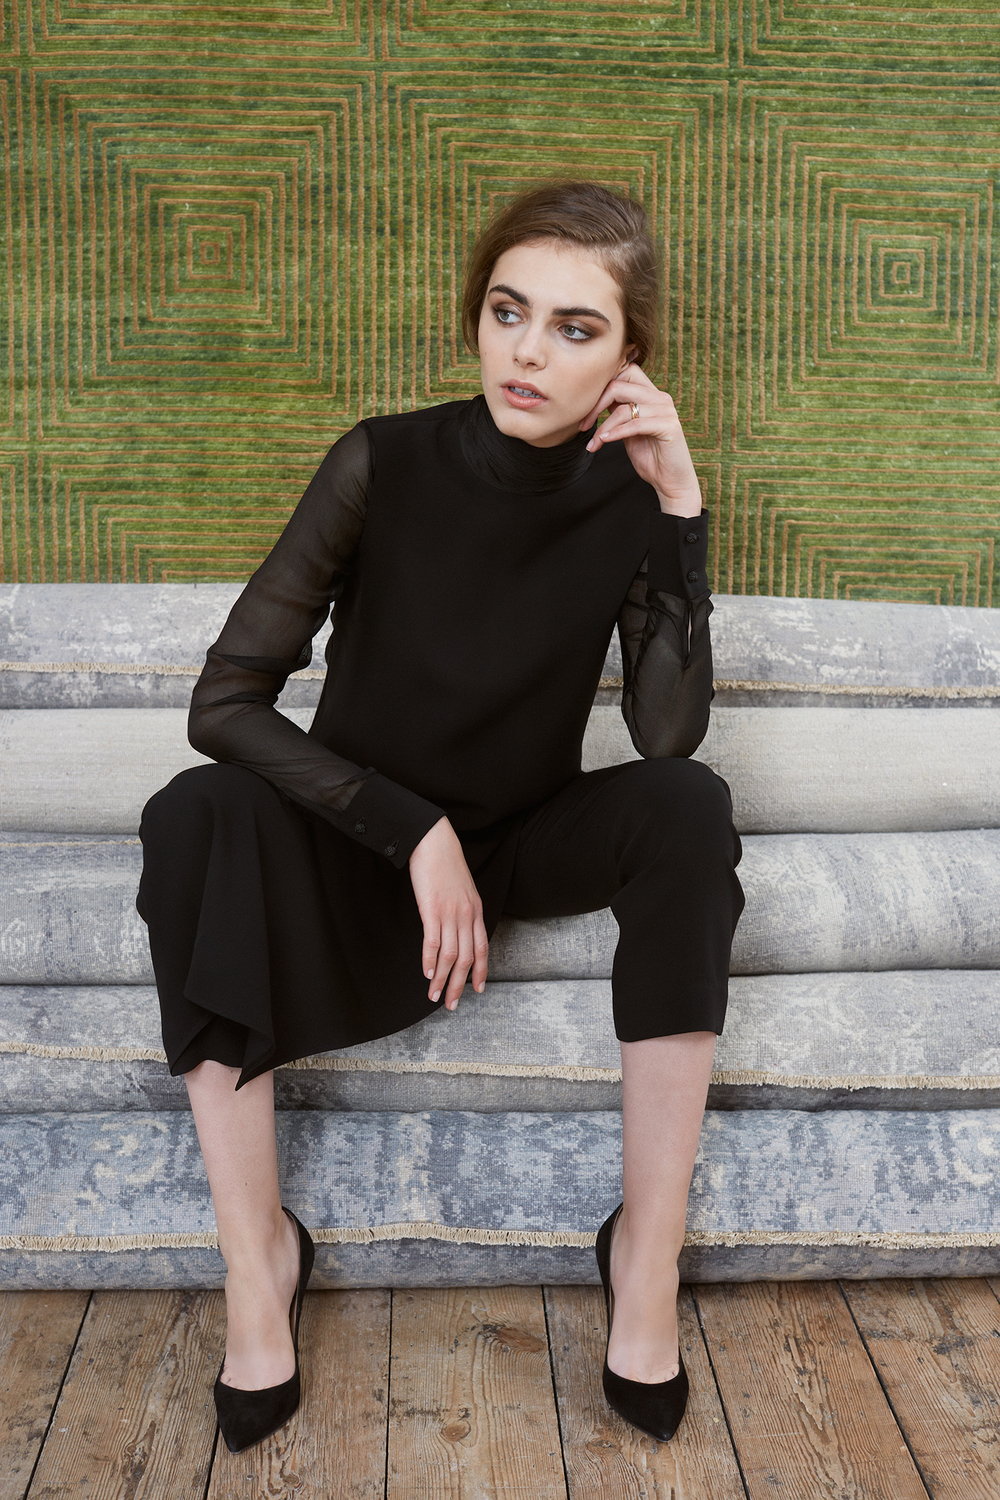 Stahl polo neck top, Gehry trousers